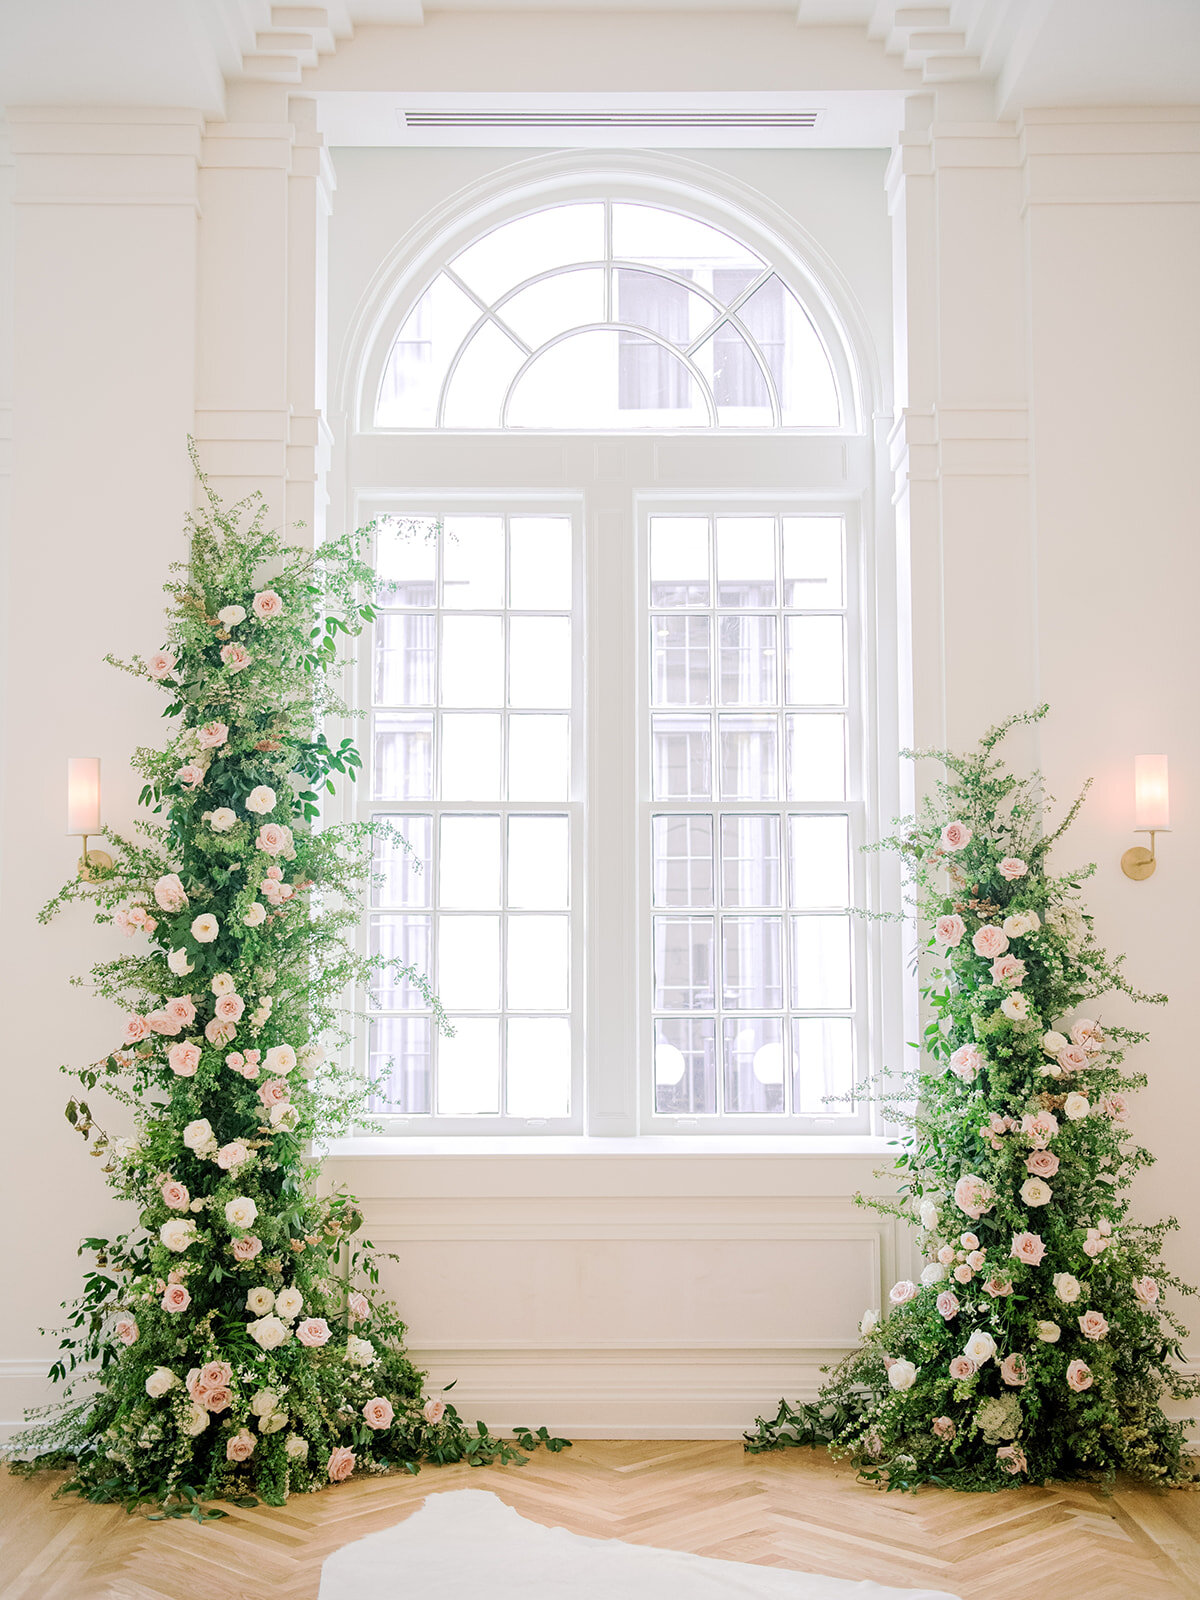 Top 3 Ways To Surprise and Delight Your Wedding Guests With Flowers